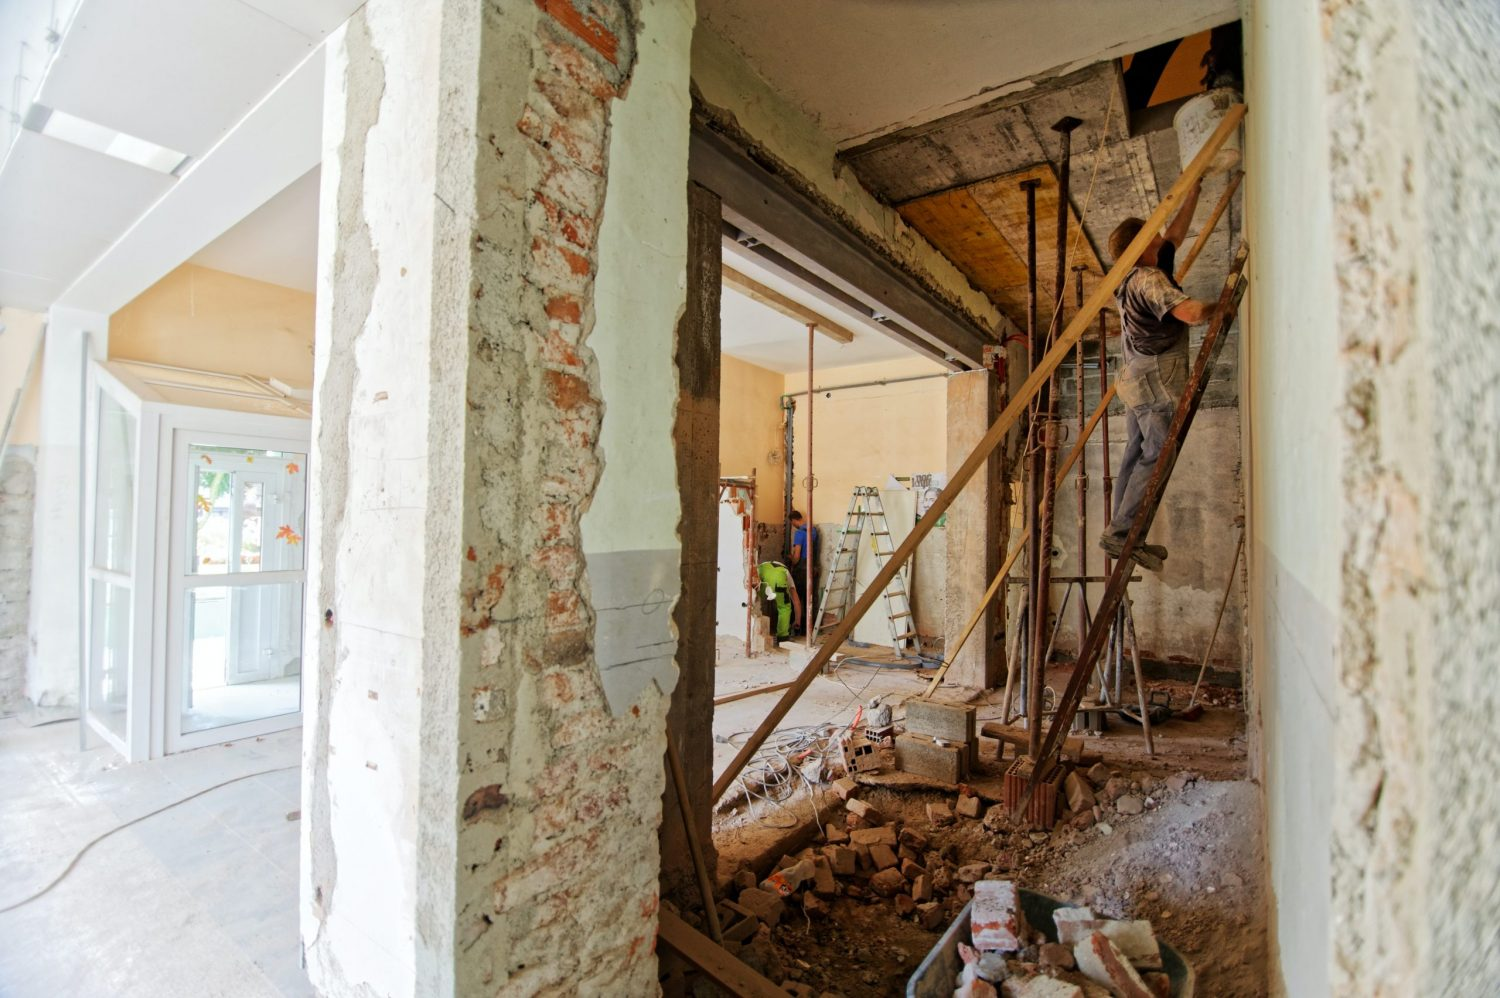 Ready to build, renovate or extend your home… BUT have no idea WHERE to BEGIN?